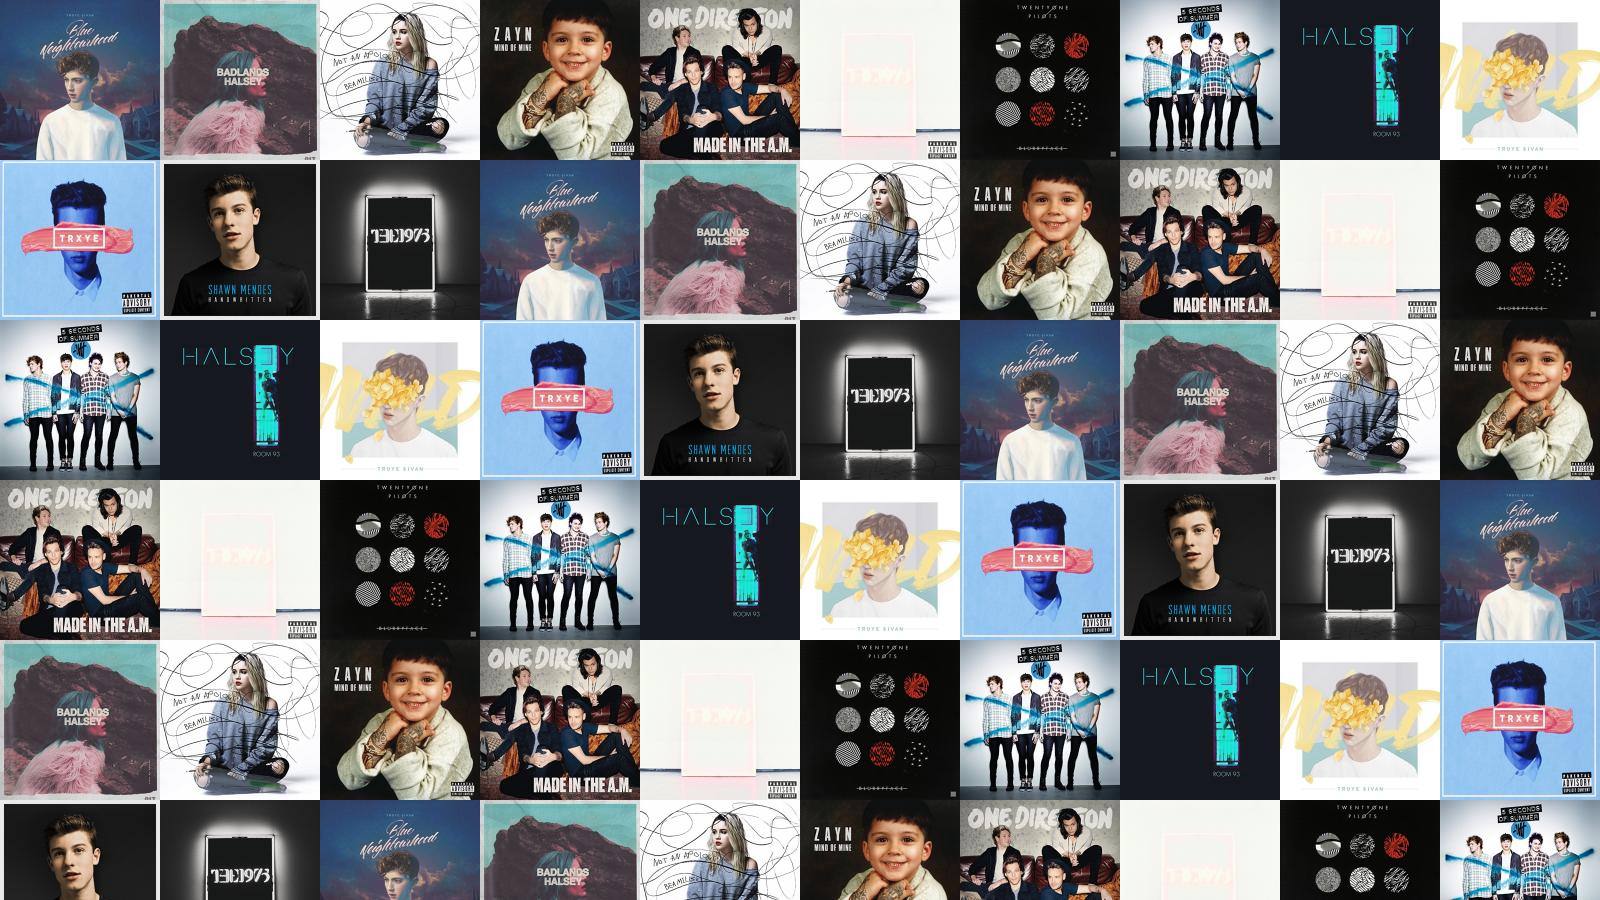 One Direction And Shawn Mendes - HD Wallpaper